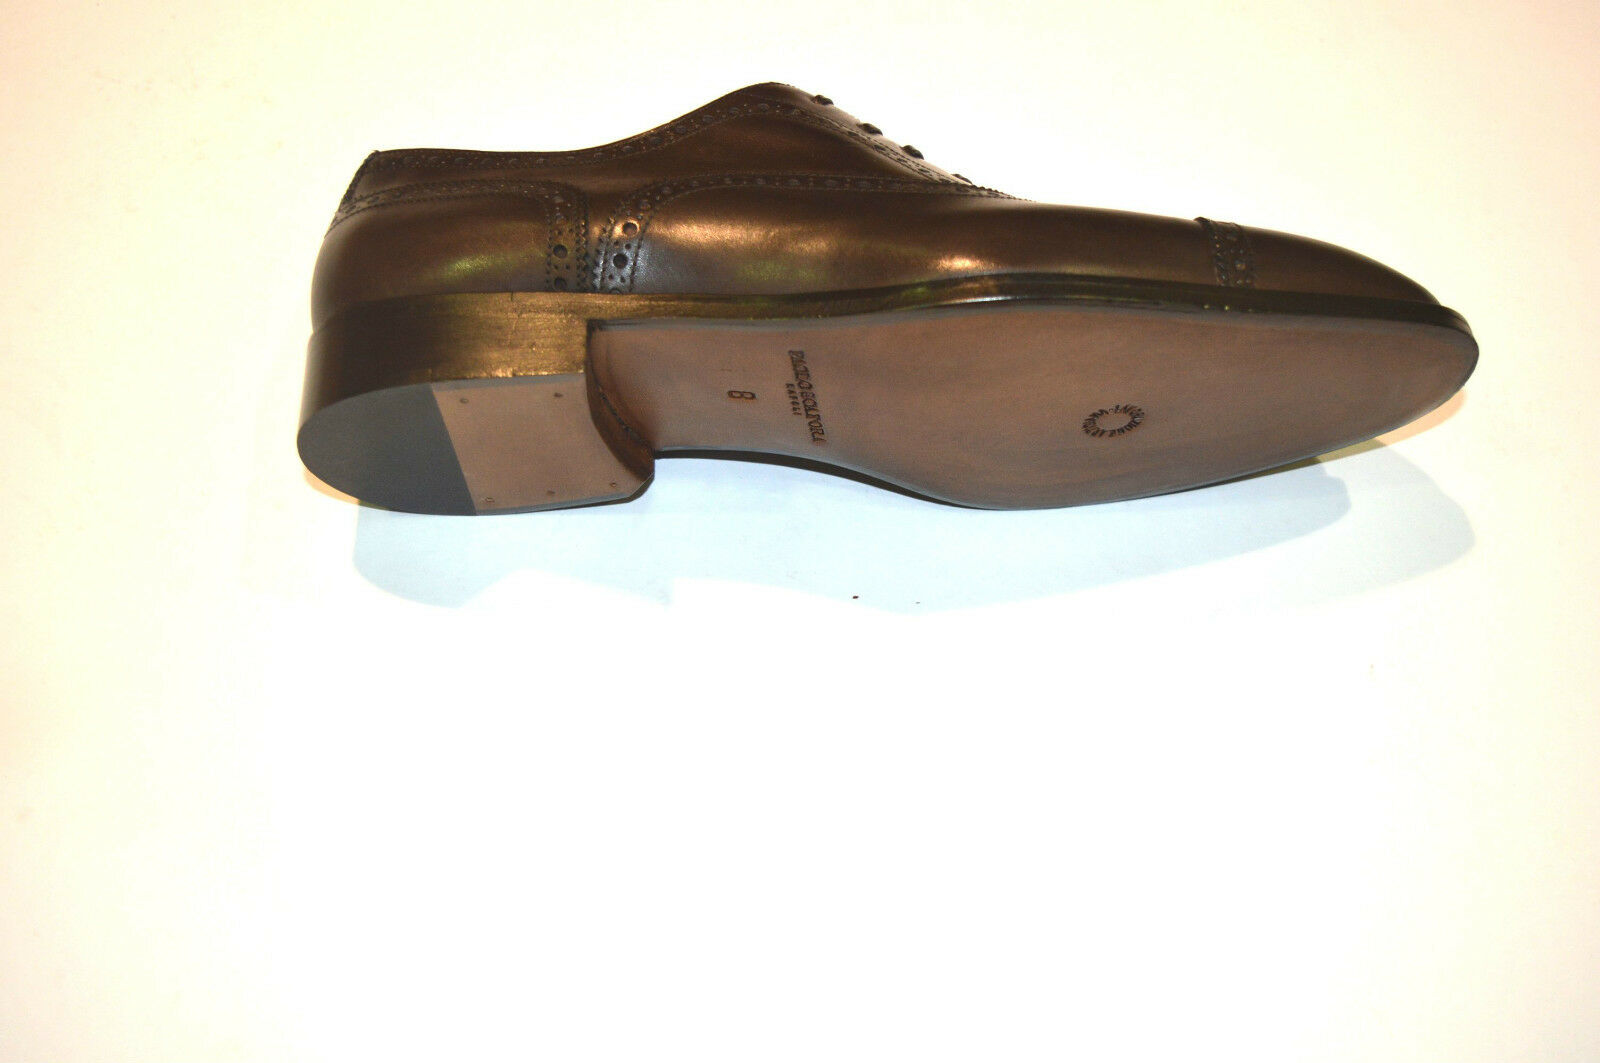 New PAOLO SCAFORA Dress Leather Leather Leather Luxury shoes Size Eu 41.5 Uk 7.5 Us 8.5 (Cod 5) 61d092